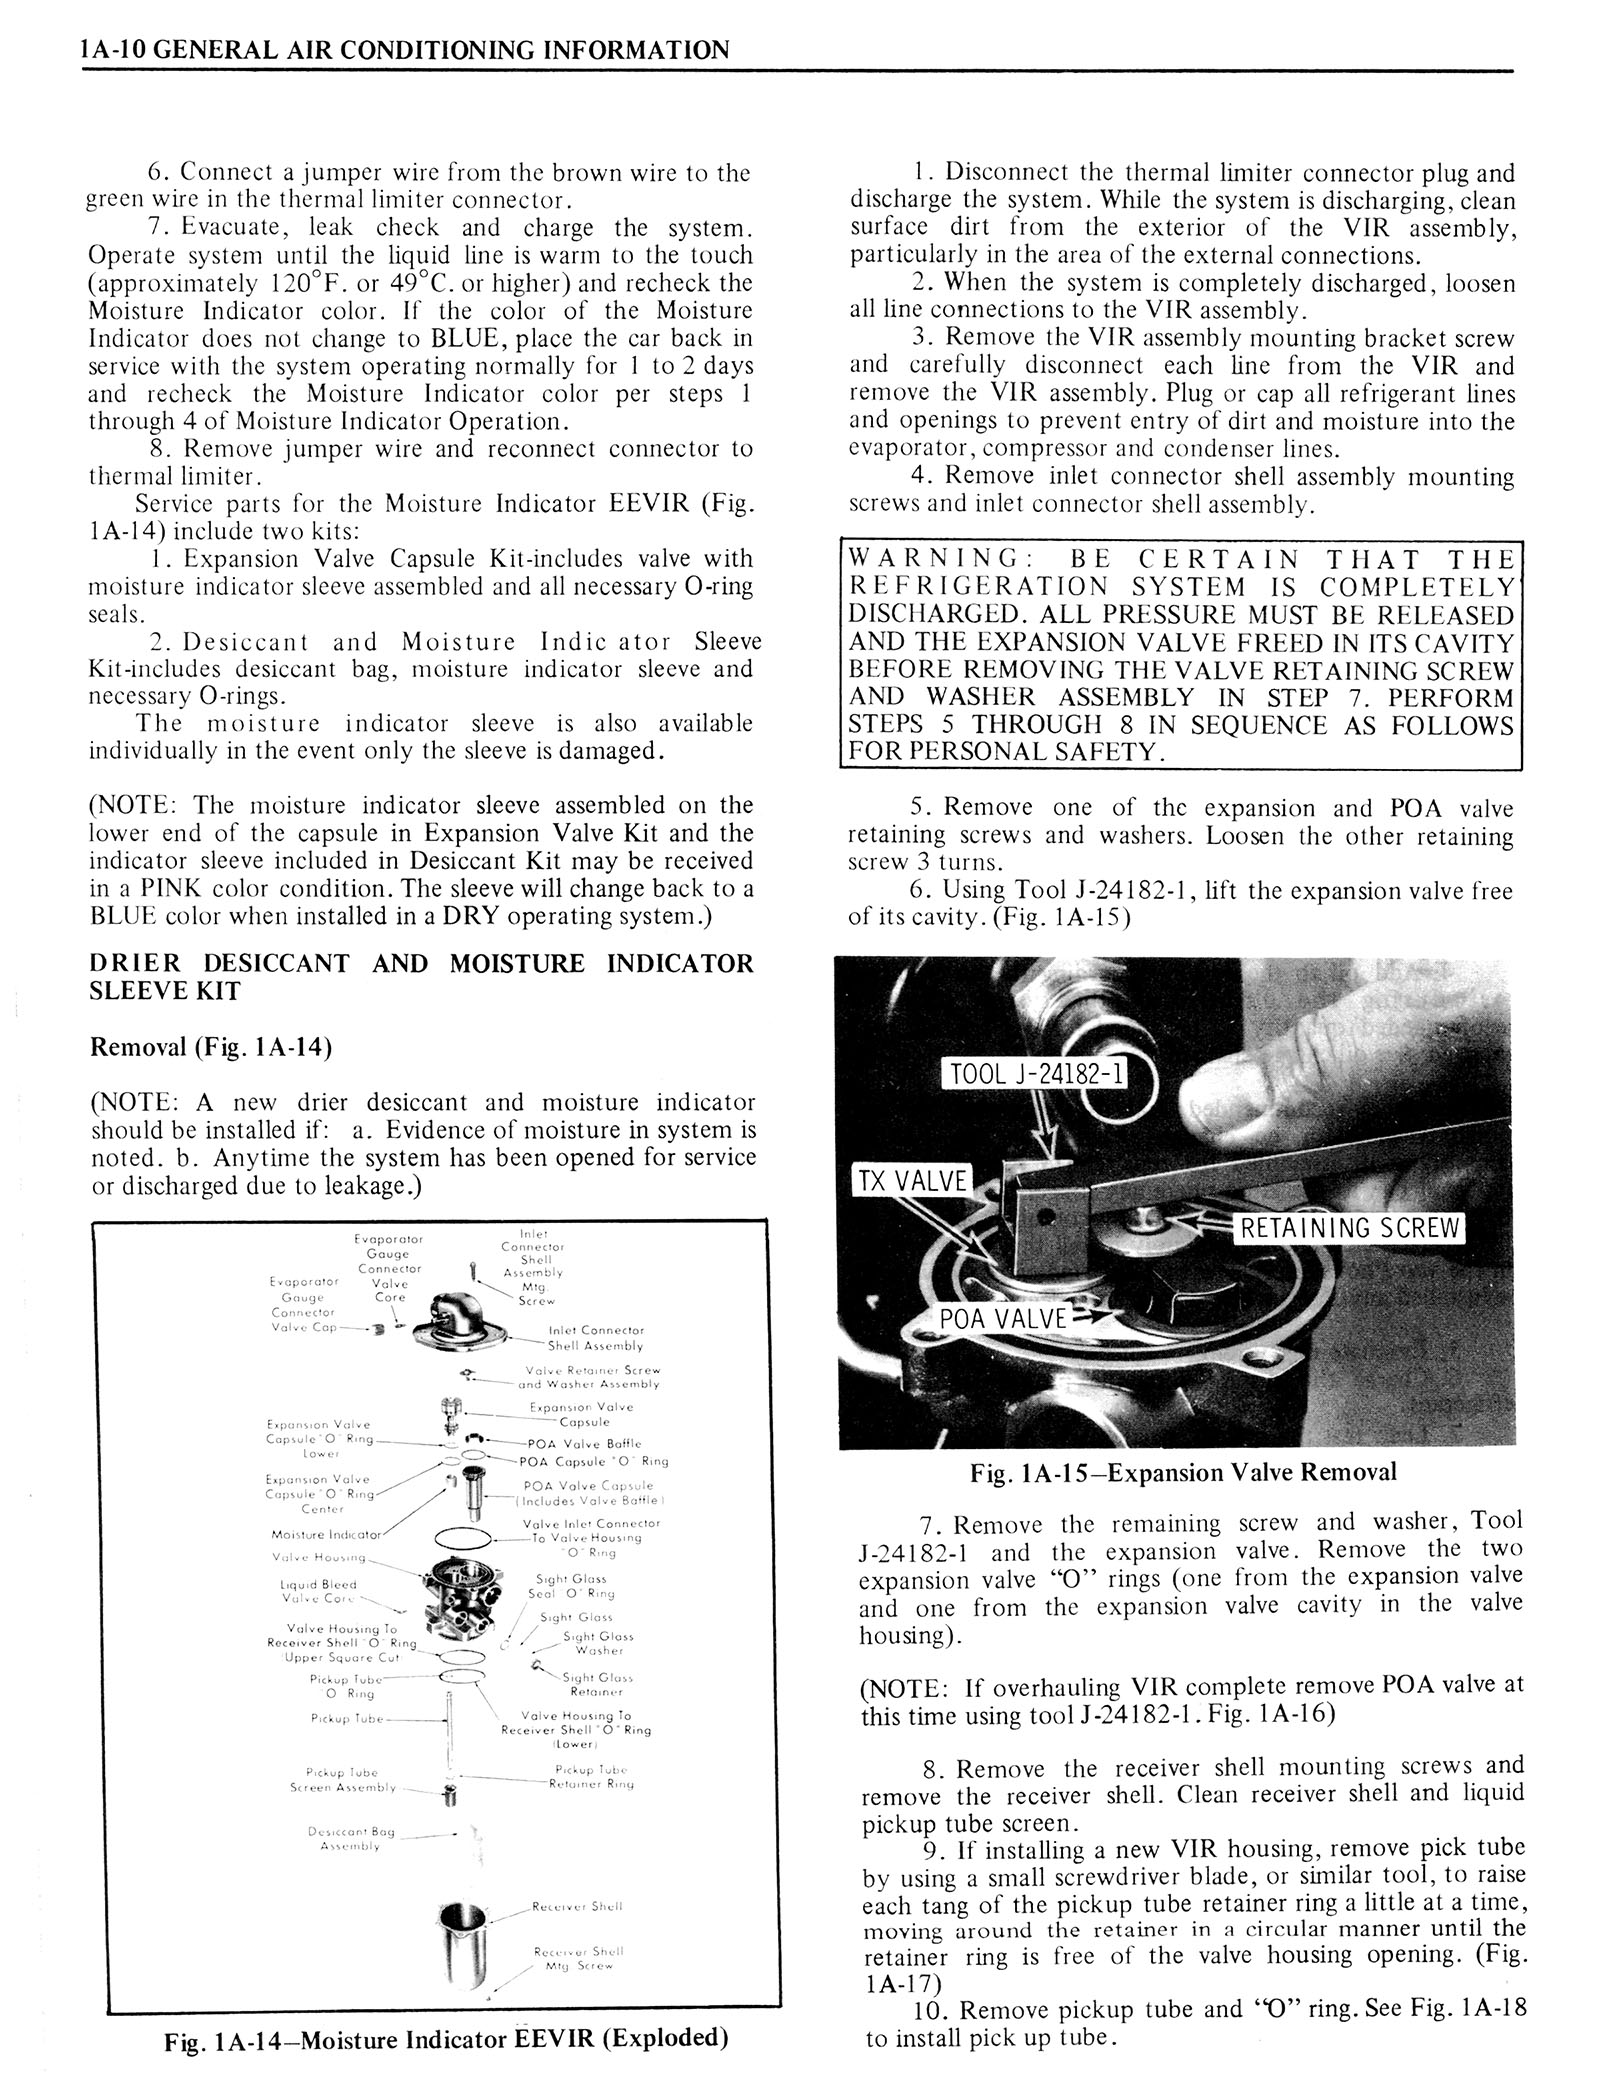 1976 Oldsmobile Service Manual page 52 of 1390